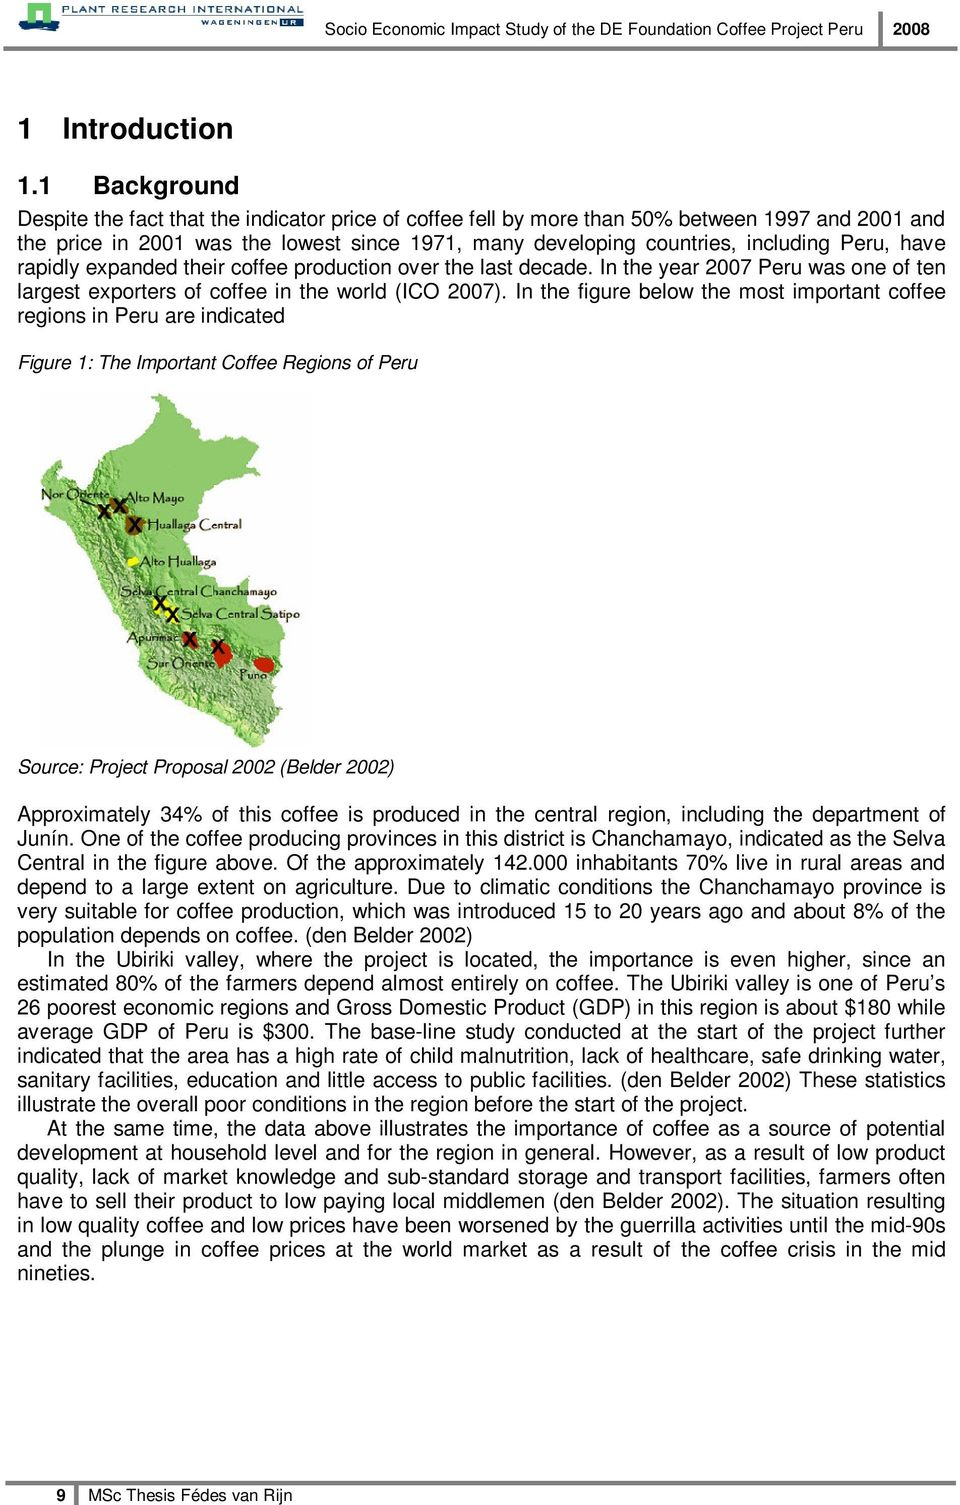 Peru, have rapidly expanded their coffee production over the last decade. In the year 2007 Peru was one of ten largest exporters of coffee in the world (ICO 2007).